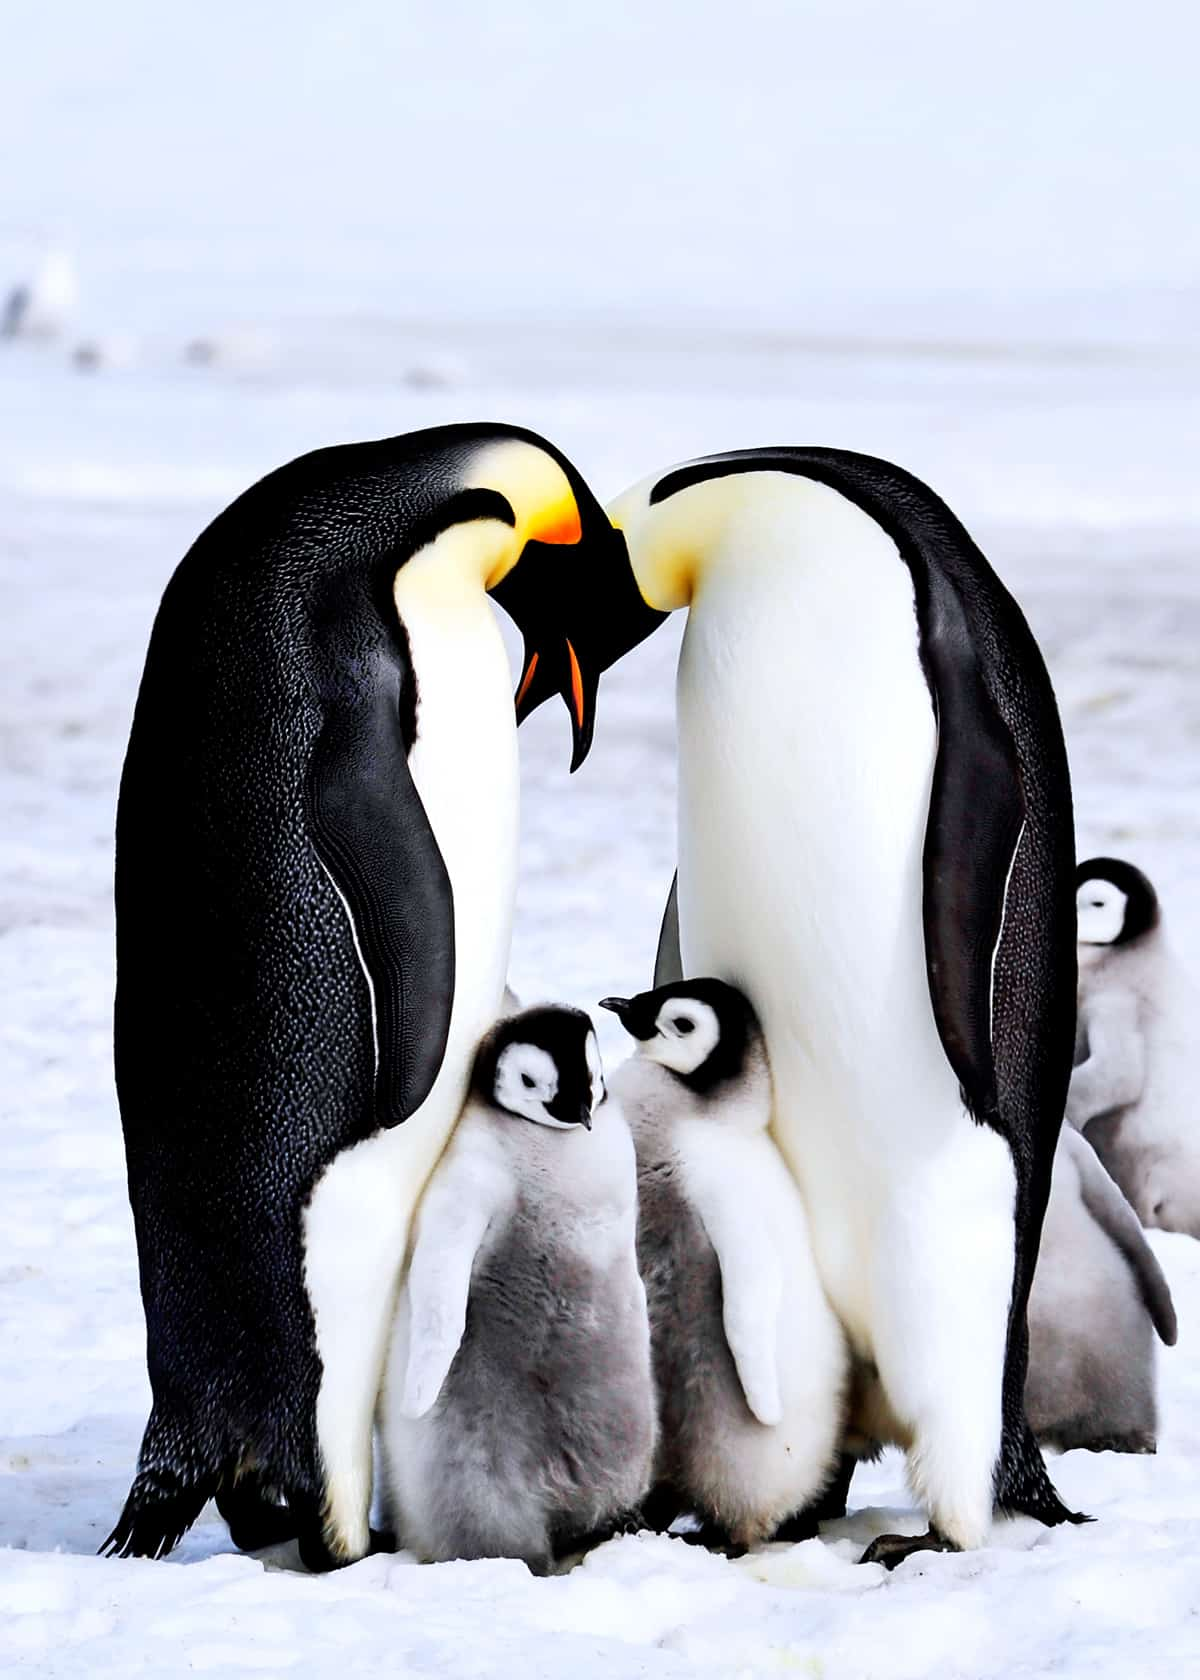 51 Baby Penguin Photos Videos And Facts That Will Have